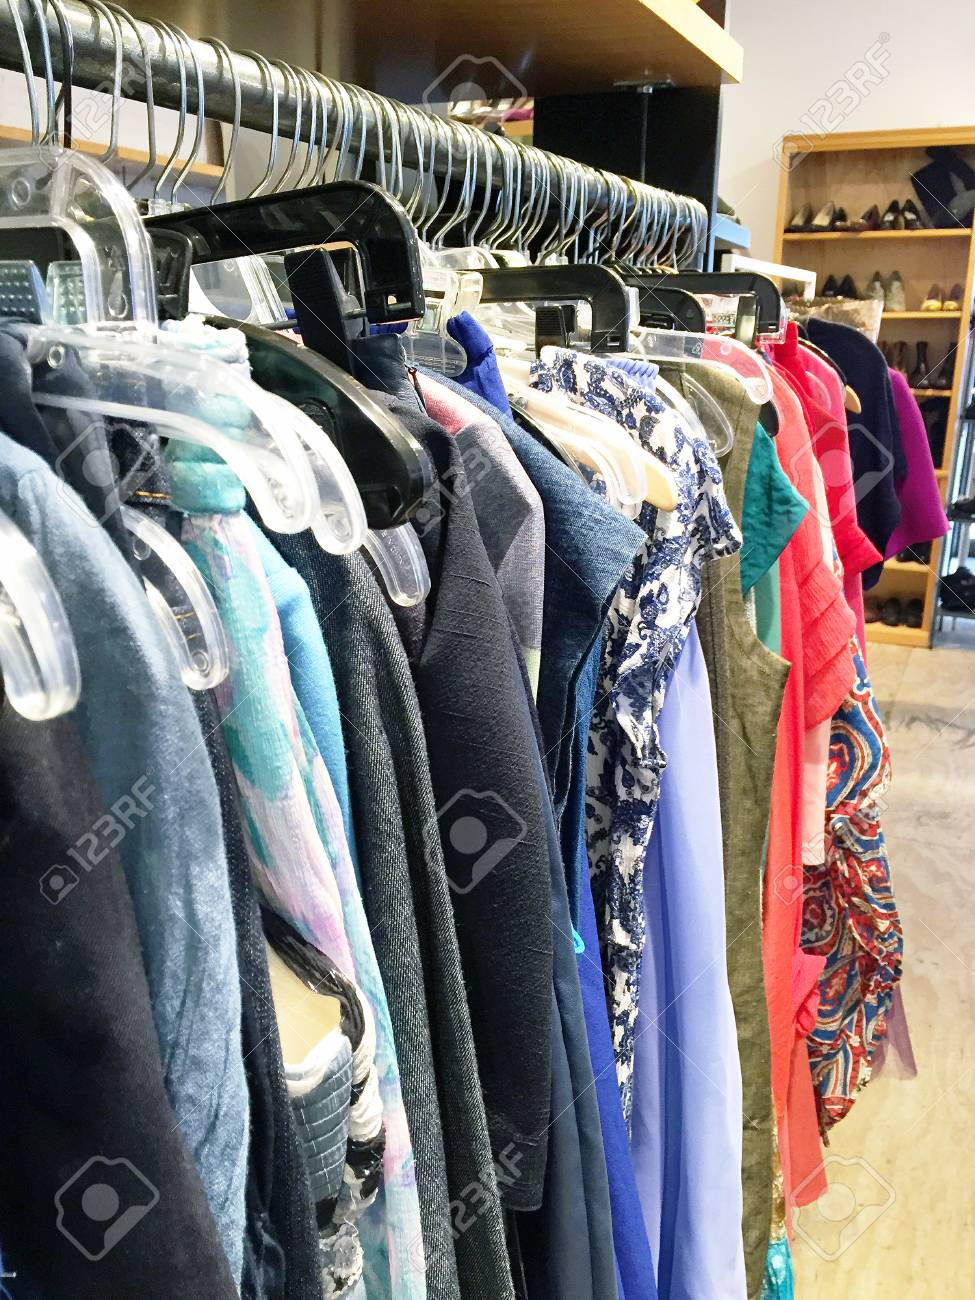 Women's clothing (pants, shirts, scarves) hanging on clothing..